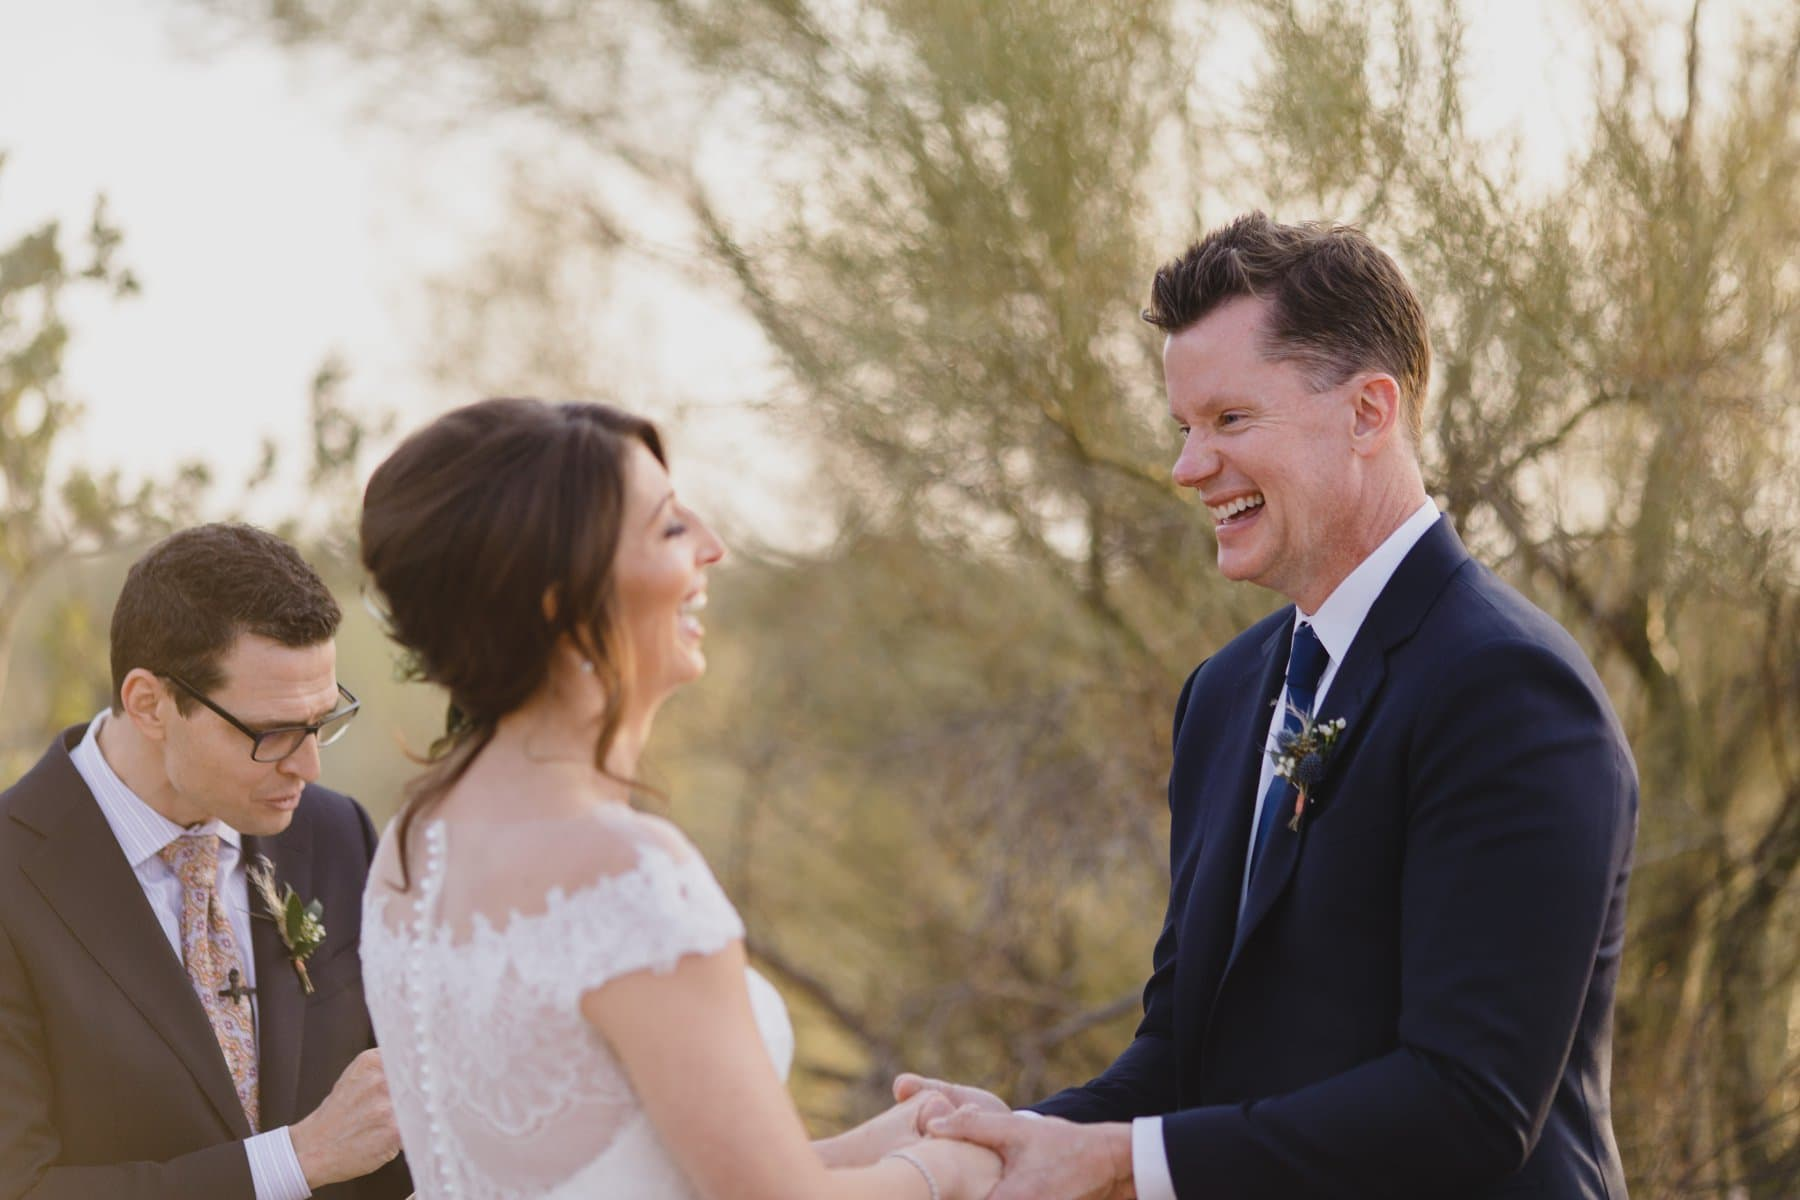 candid moment in elopement in Arizona desert